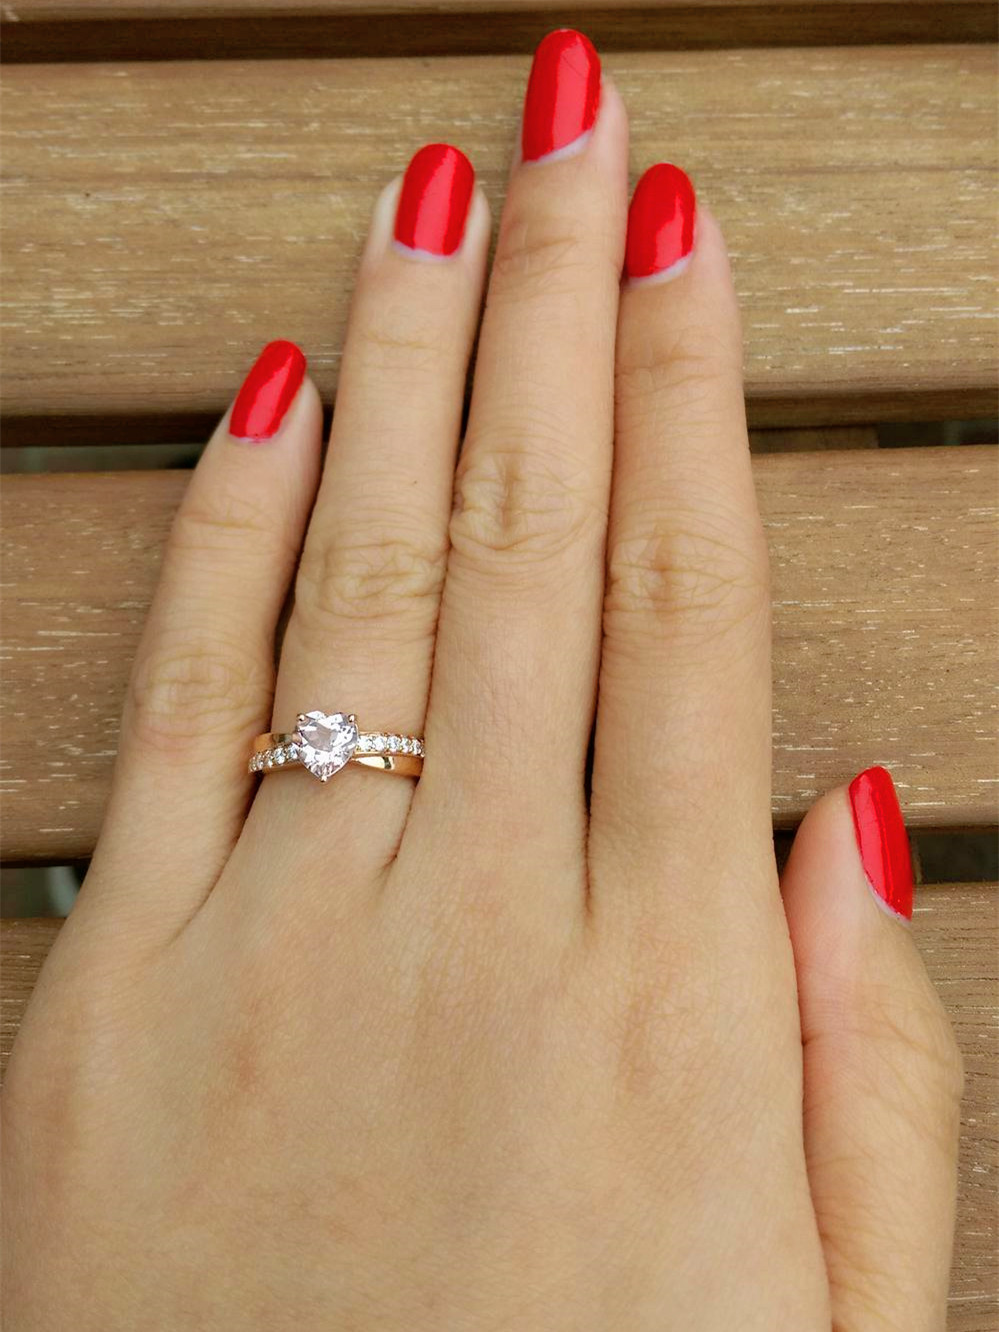 Wedding Ring Resale 94 Cool Anyway here are my